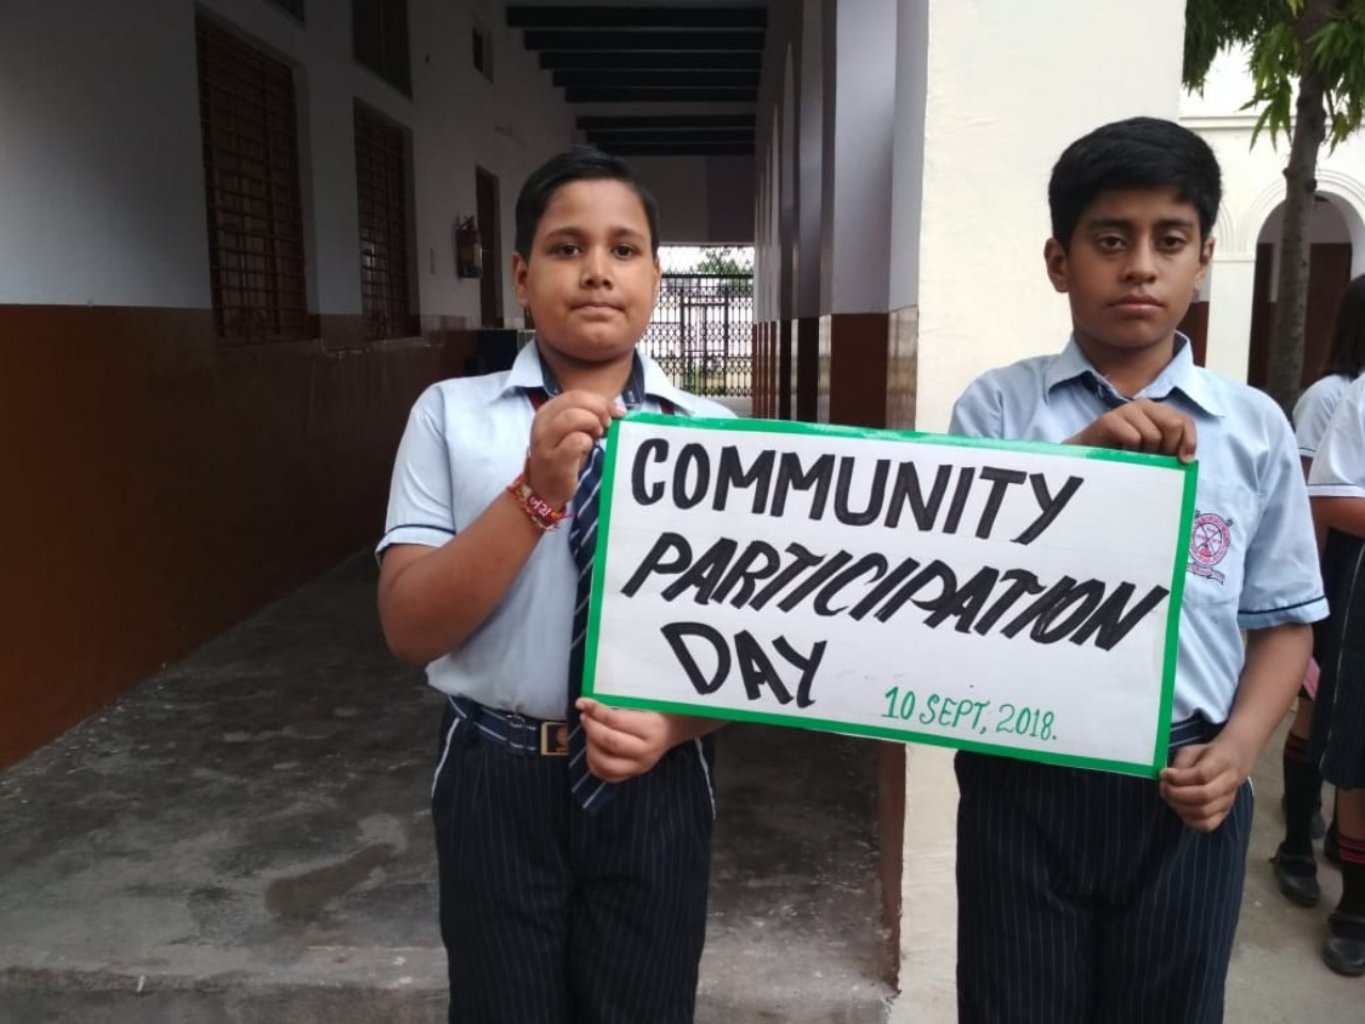 Community Participation Day